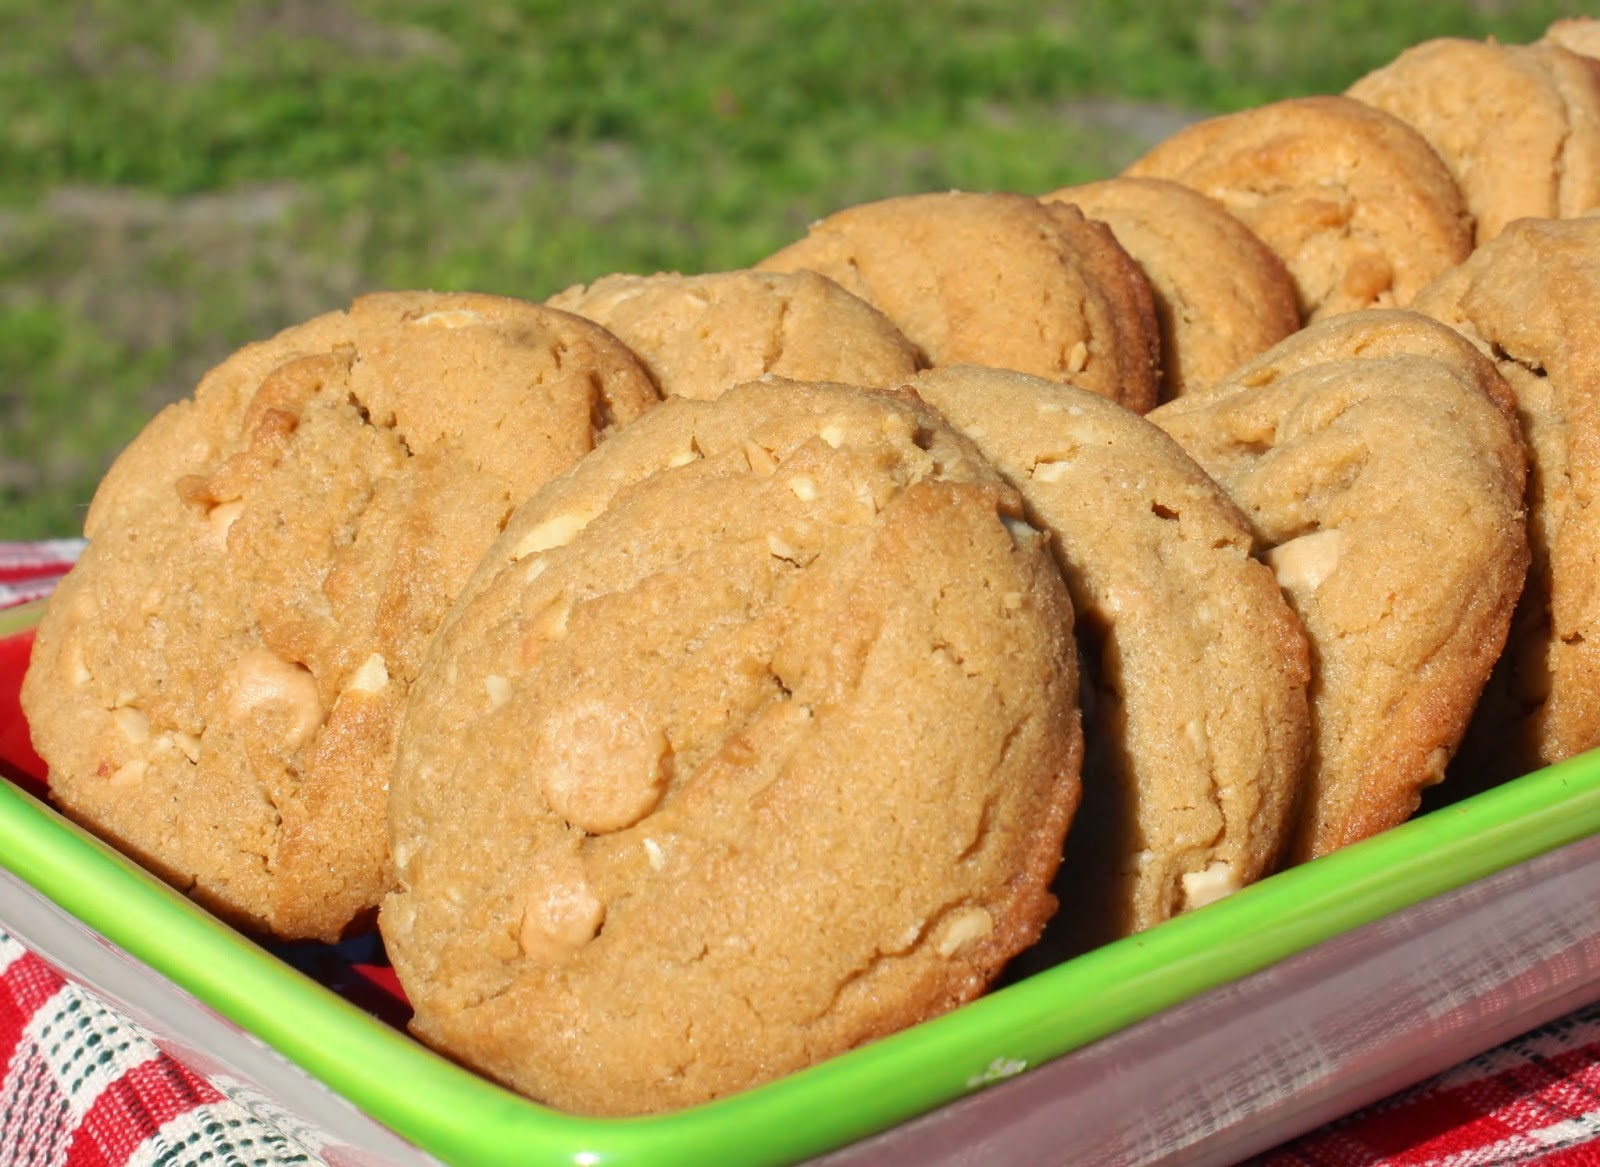 ... of Long Island and Central Florida: Triple Play Peanut Butter Cookies